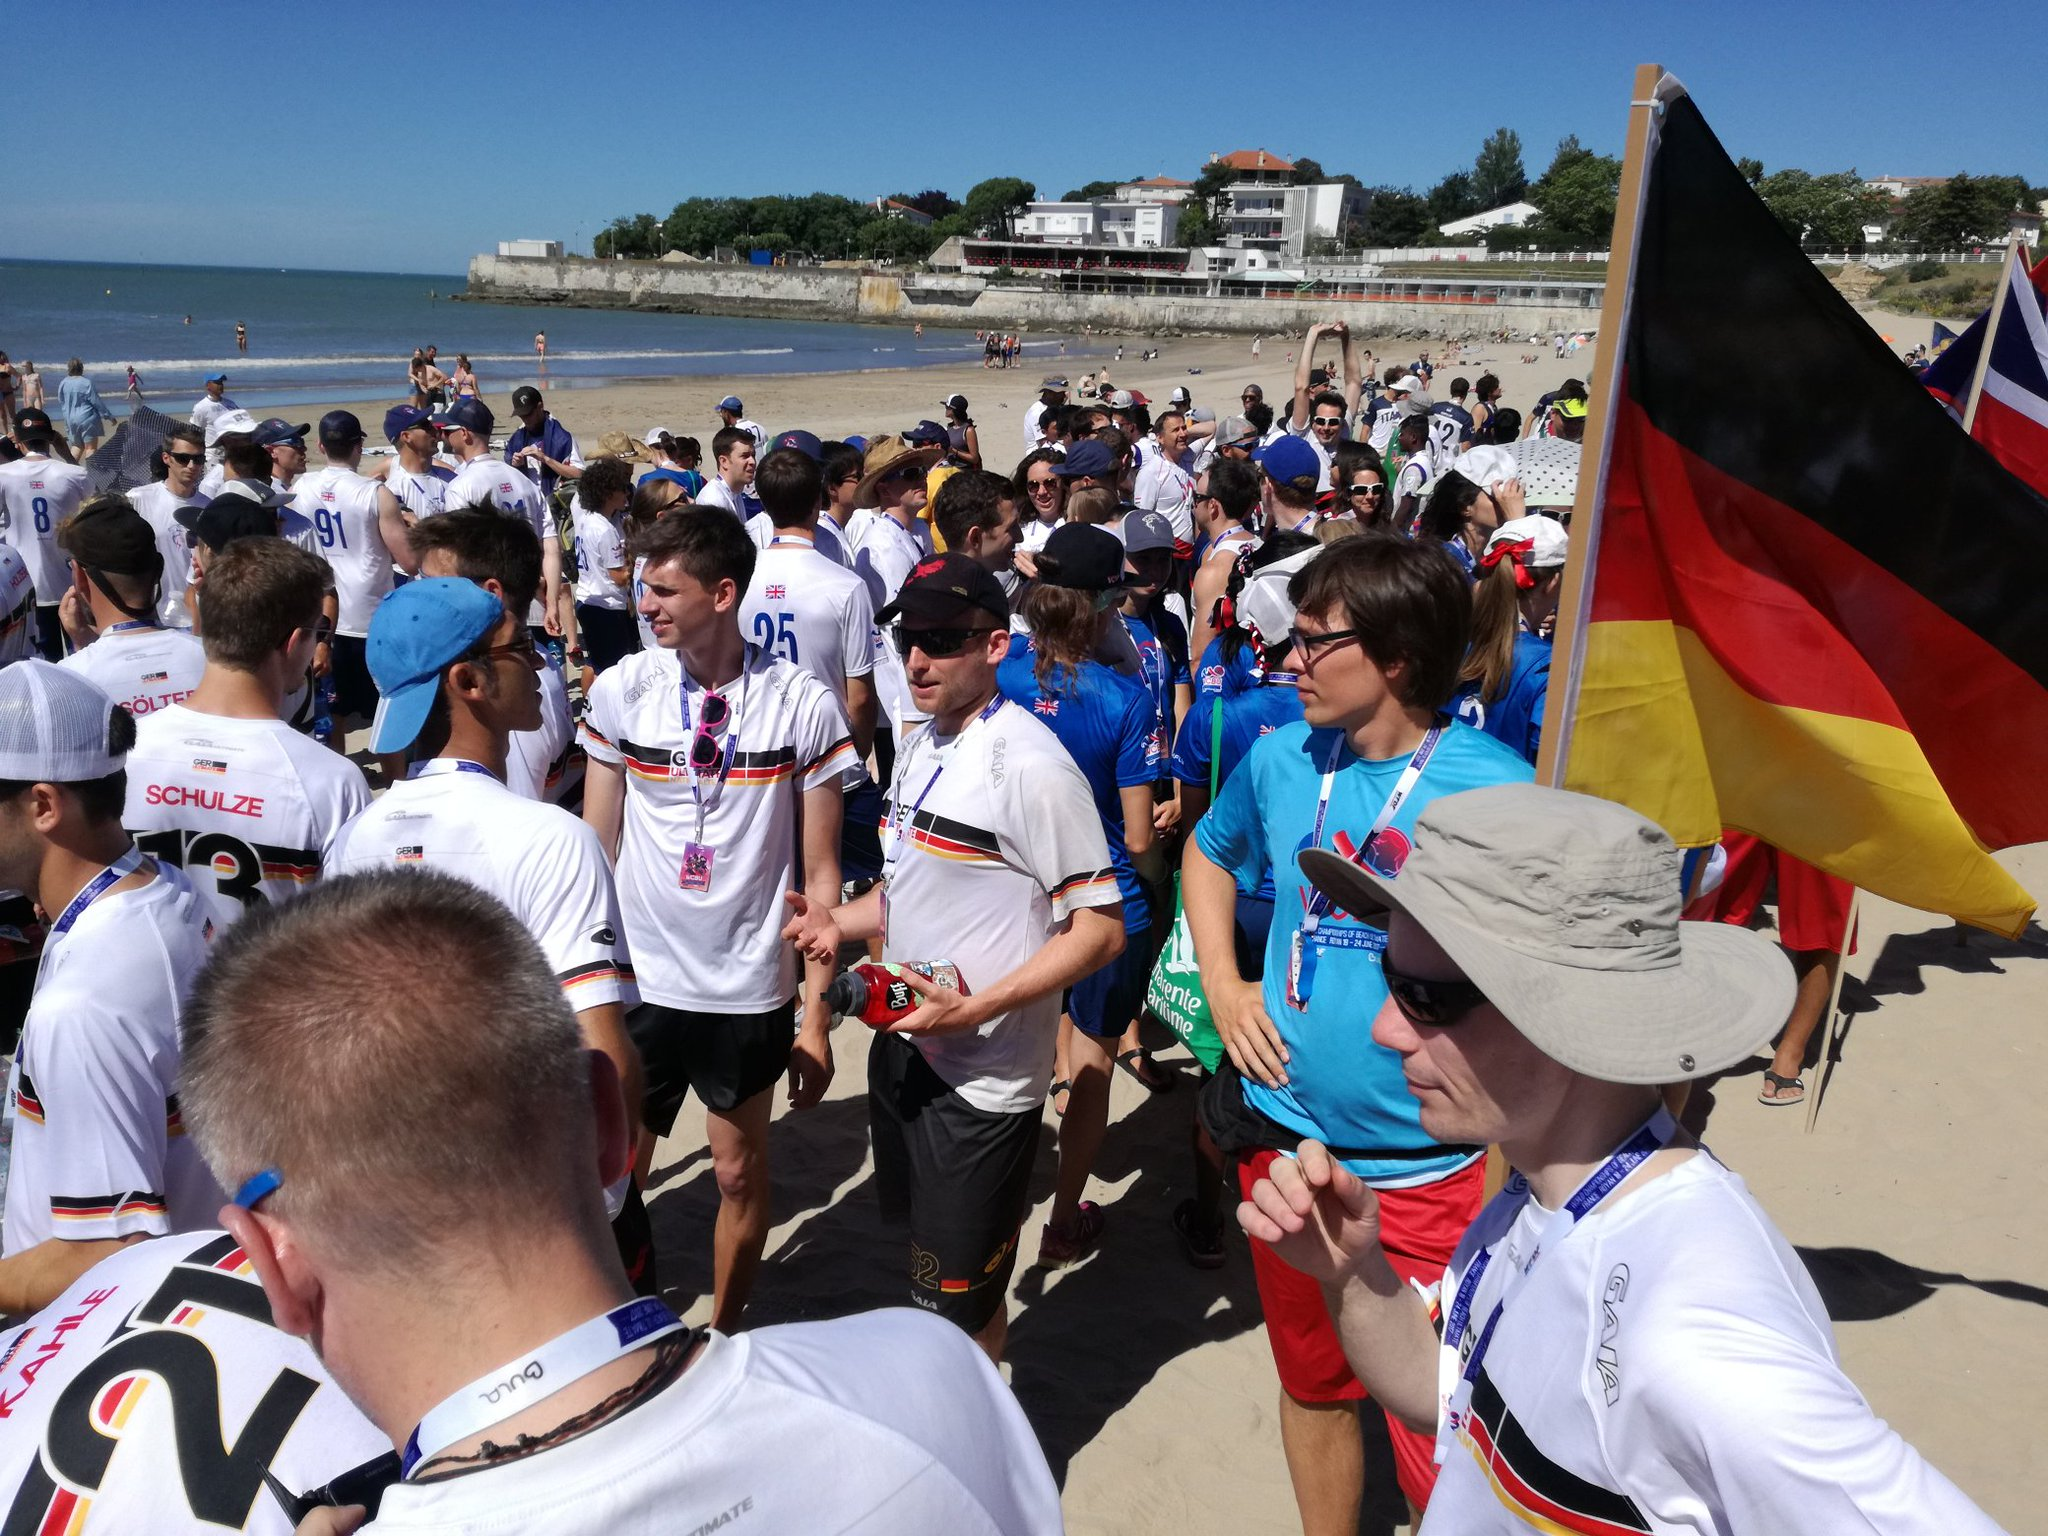 Es geht los! #WCBU2017 #Germany #grdm #ger https://t.co/ebTLHcOsyx <a href='https://twitter.com/MB_insenglische/status/876374409770127361/photo/1' target='_blank'>See original »</a>